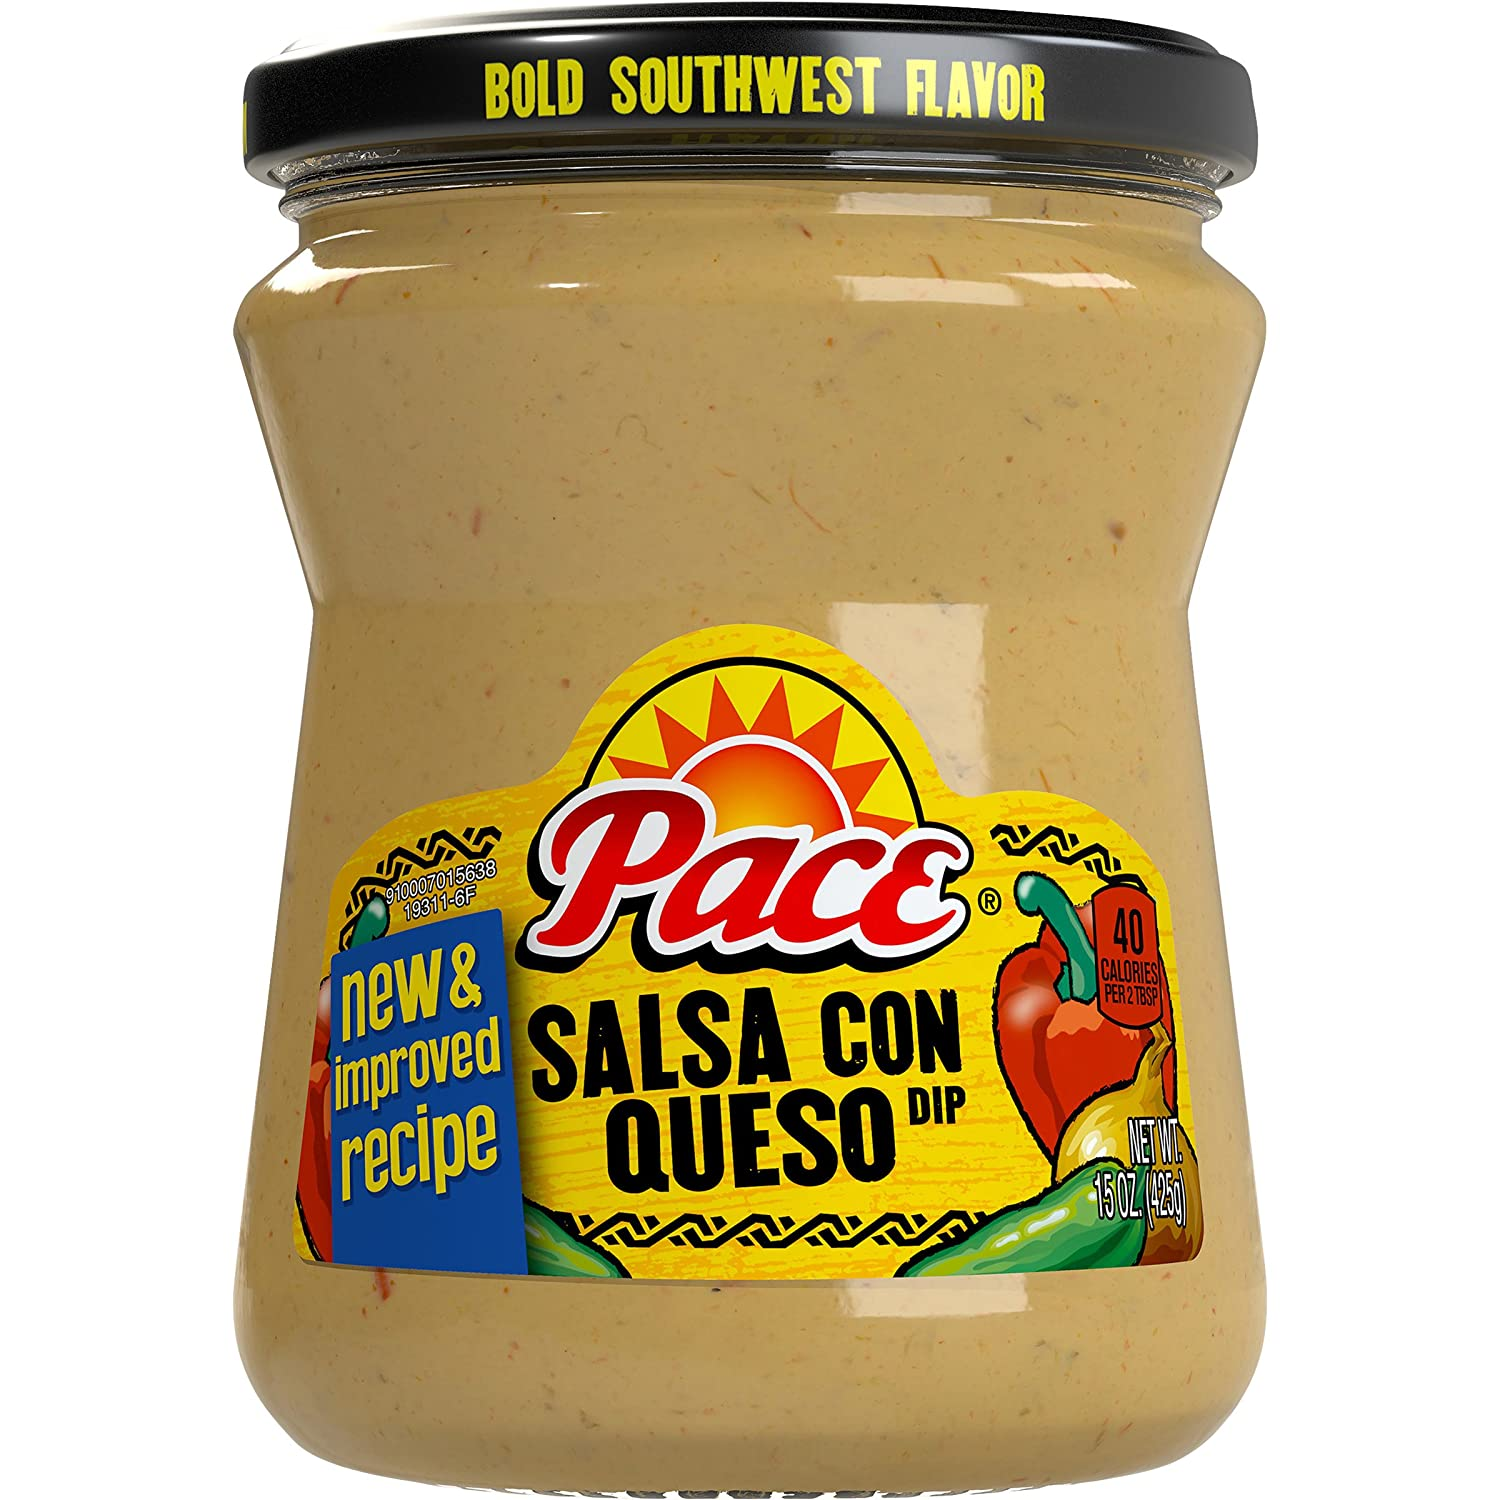 Amazon.com: Pace Salsa Con Queso, 15 Ounce (Pack of 6) (Packaging May Vary)